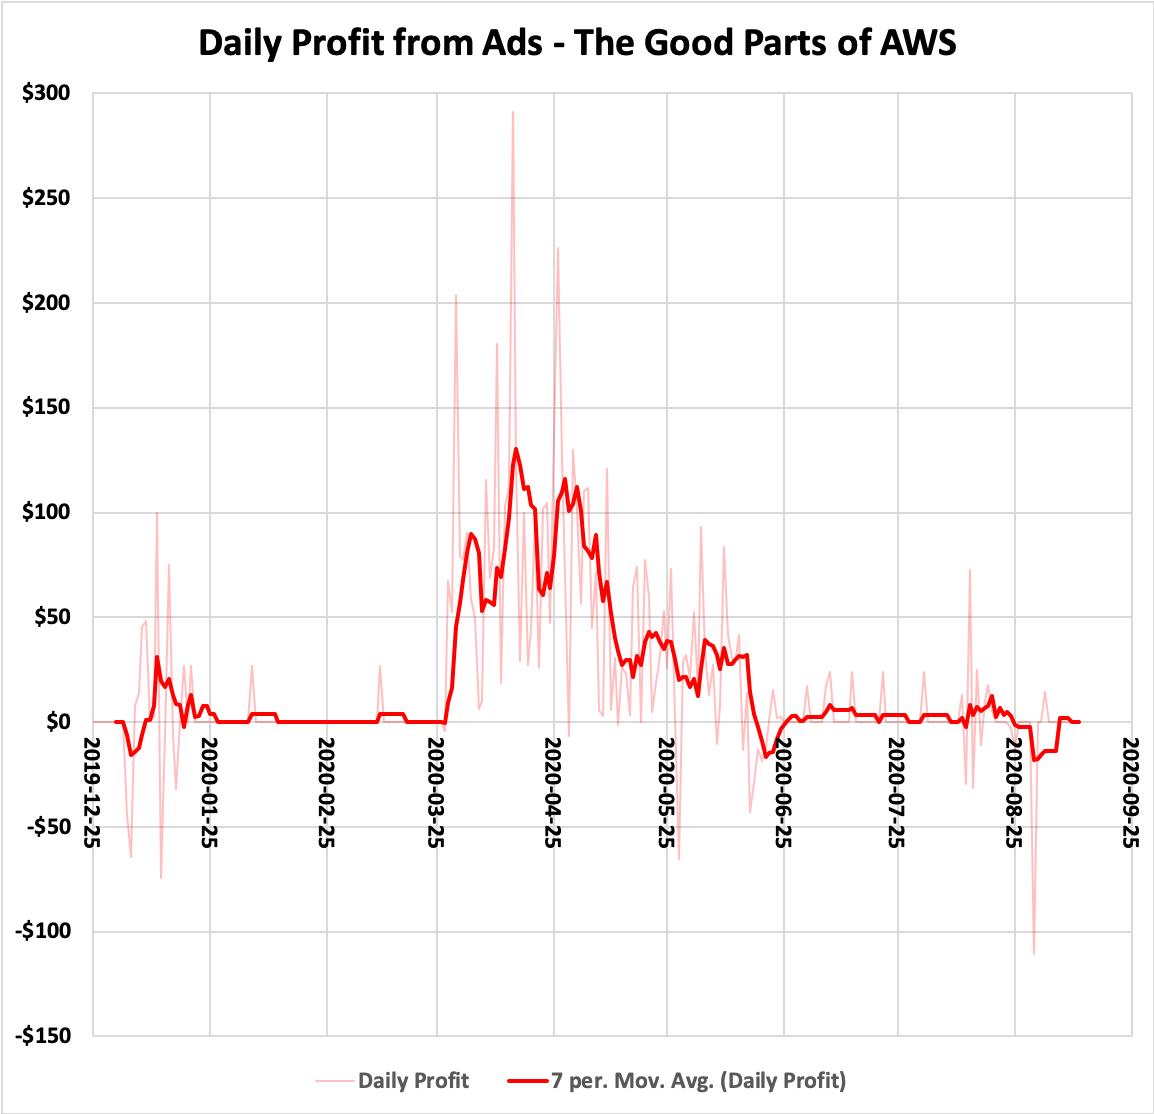 Daily Profit from Ads - The Good Parts of AWS